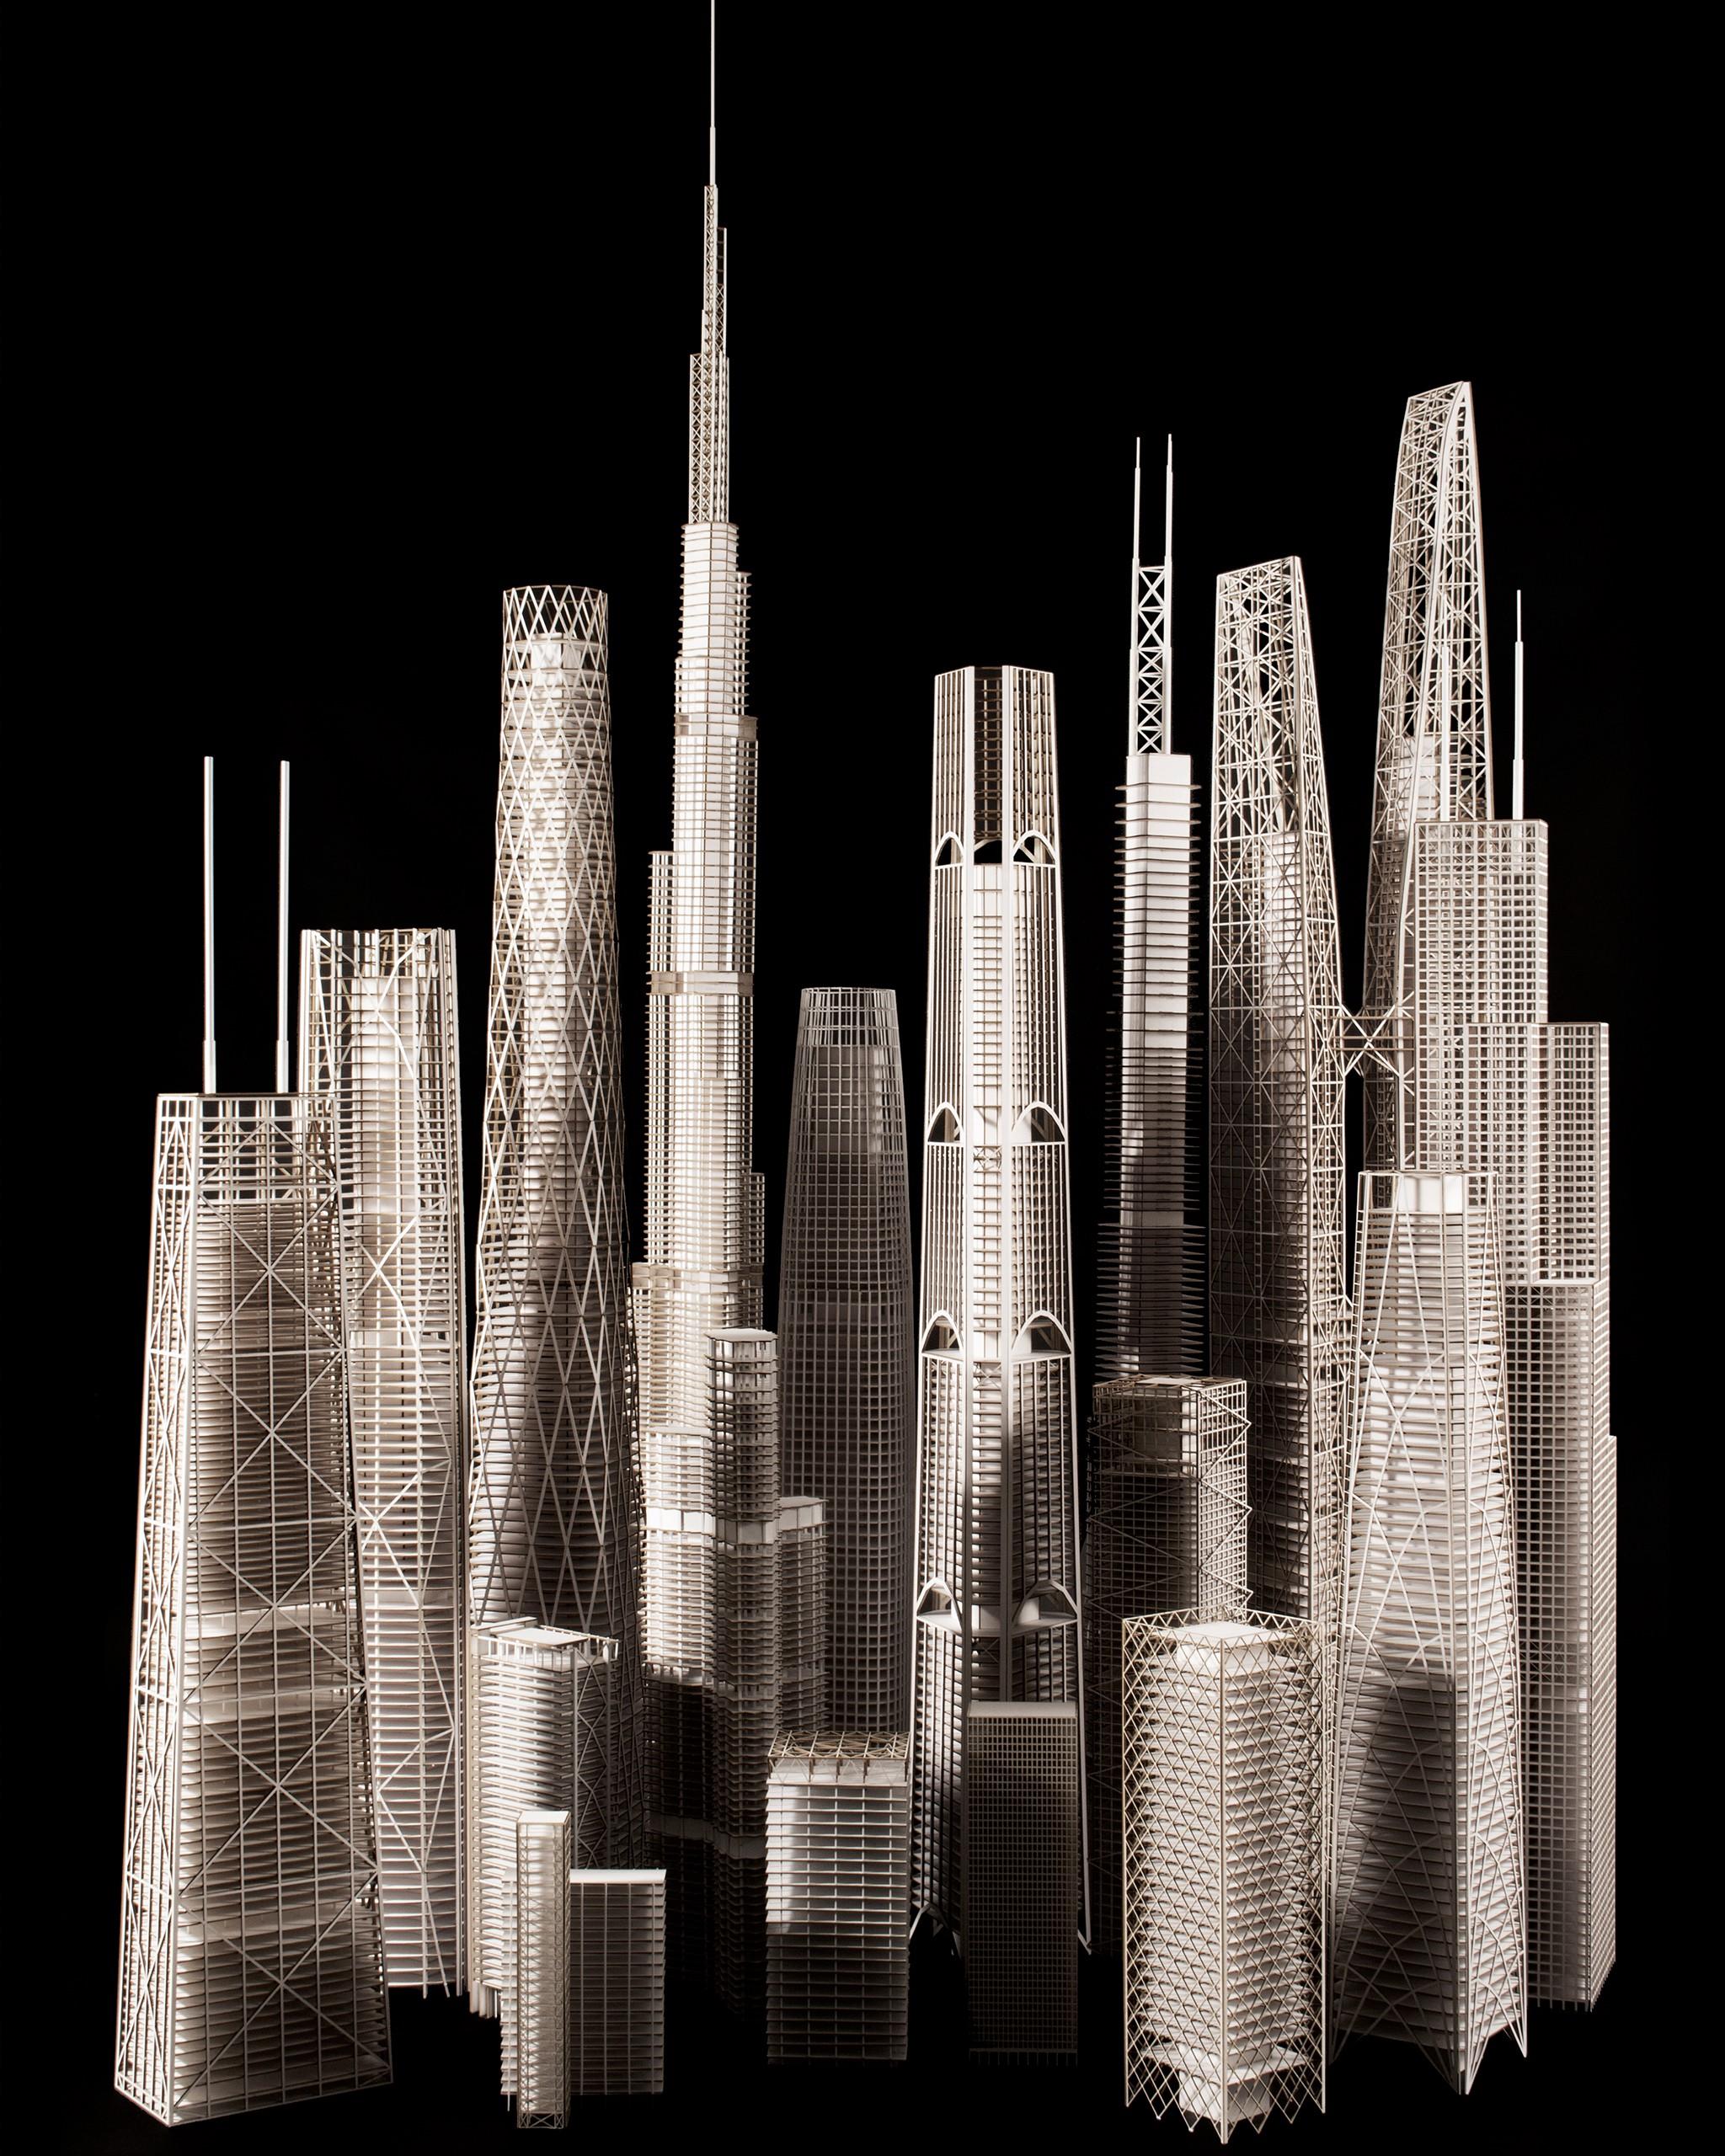 Engineering Architecture: 20 Models Reveal How Skyscrapers Work